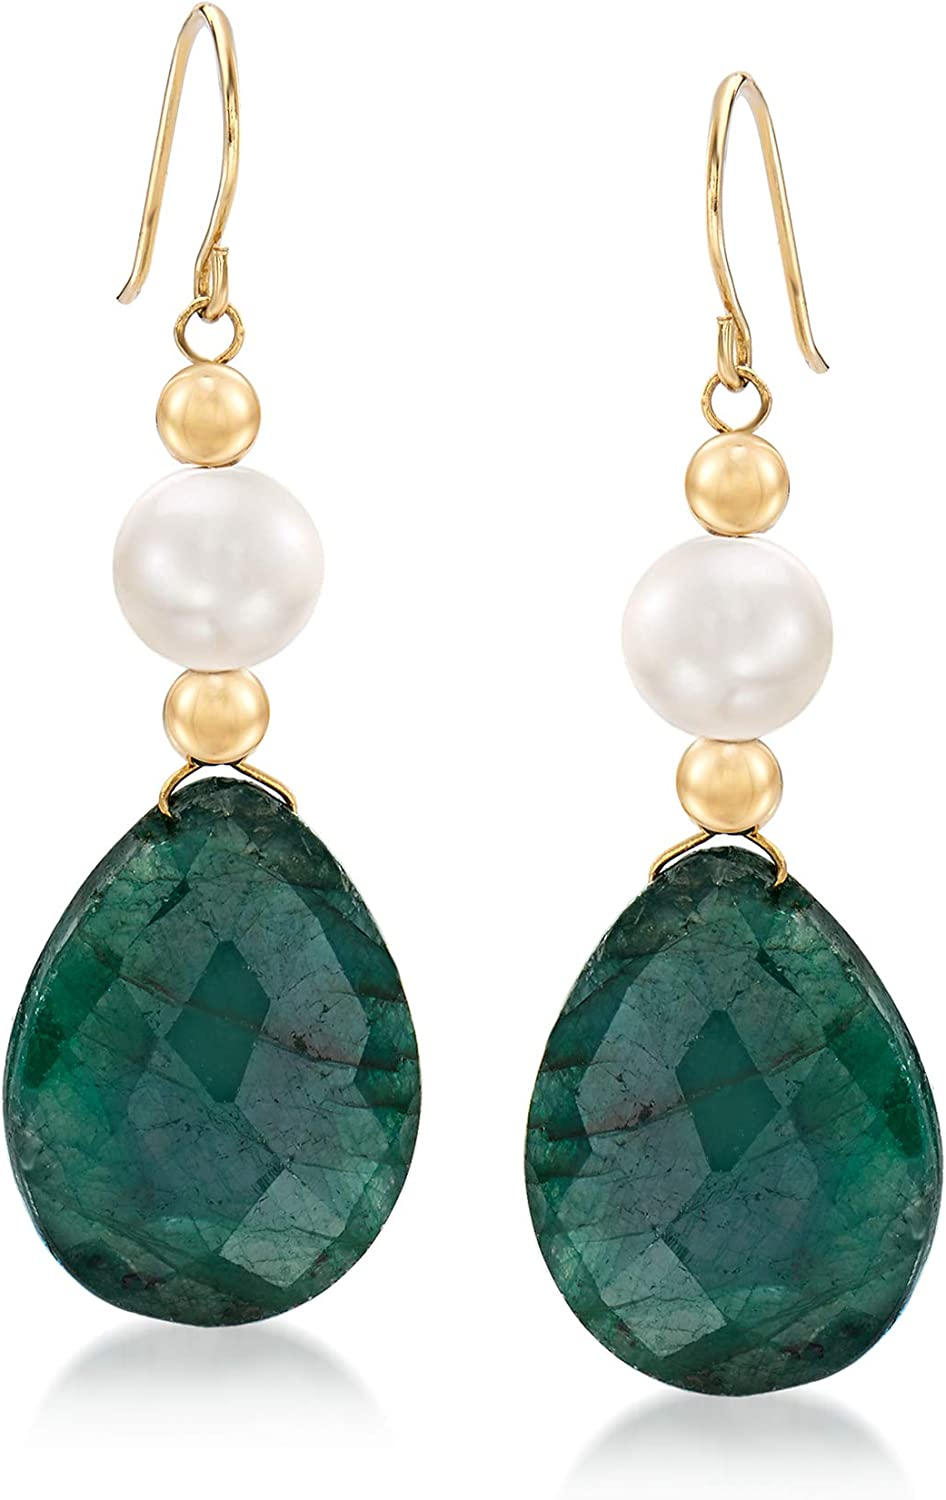 Ross-Simons Cultured Pearl and 20.00 ct. t.w. Emerald Drop Earrings in 14kt Yellow Gold